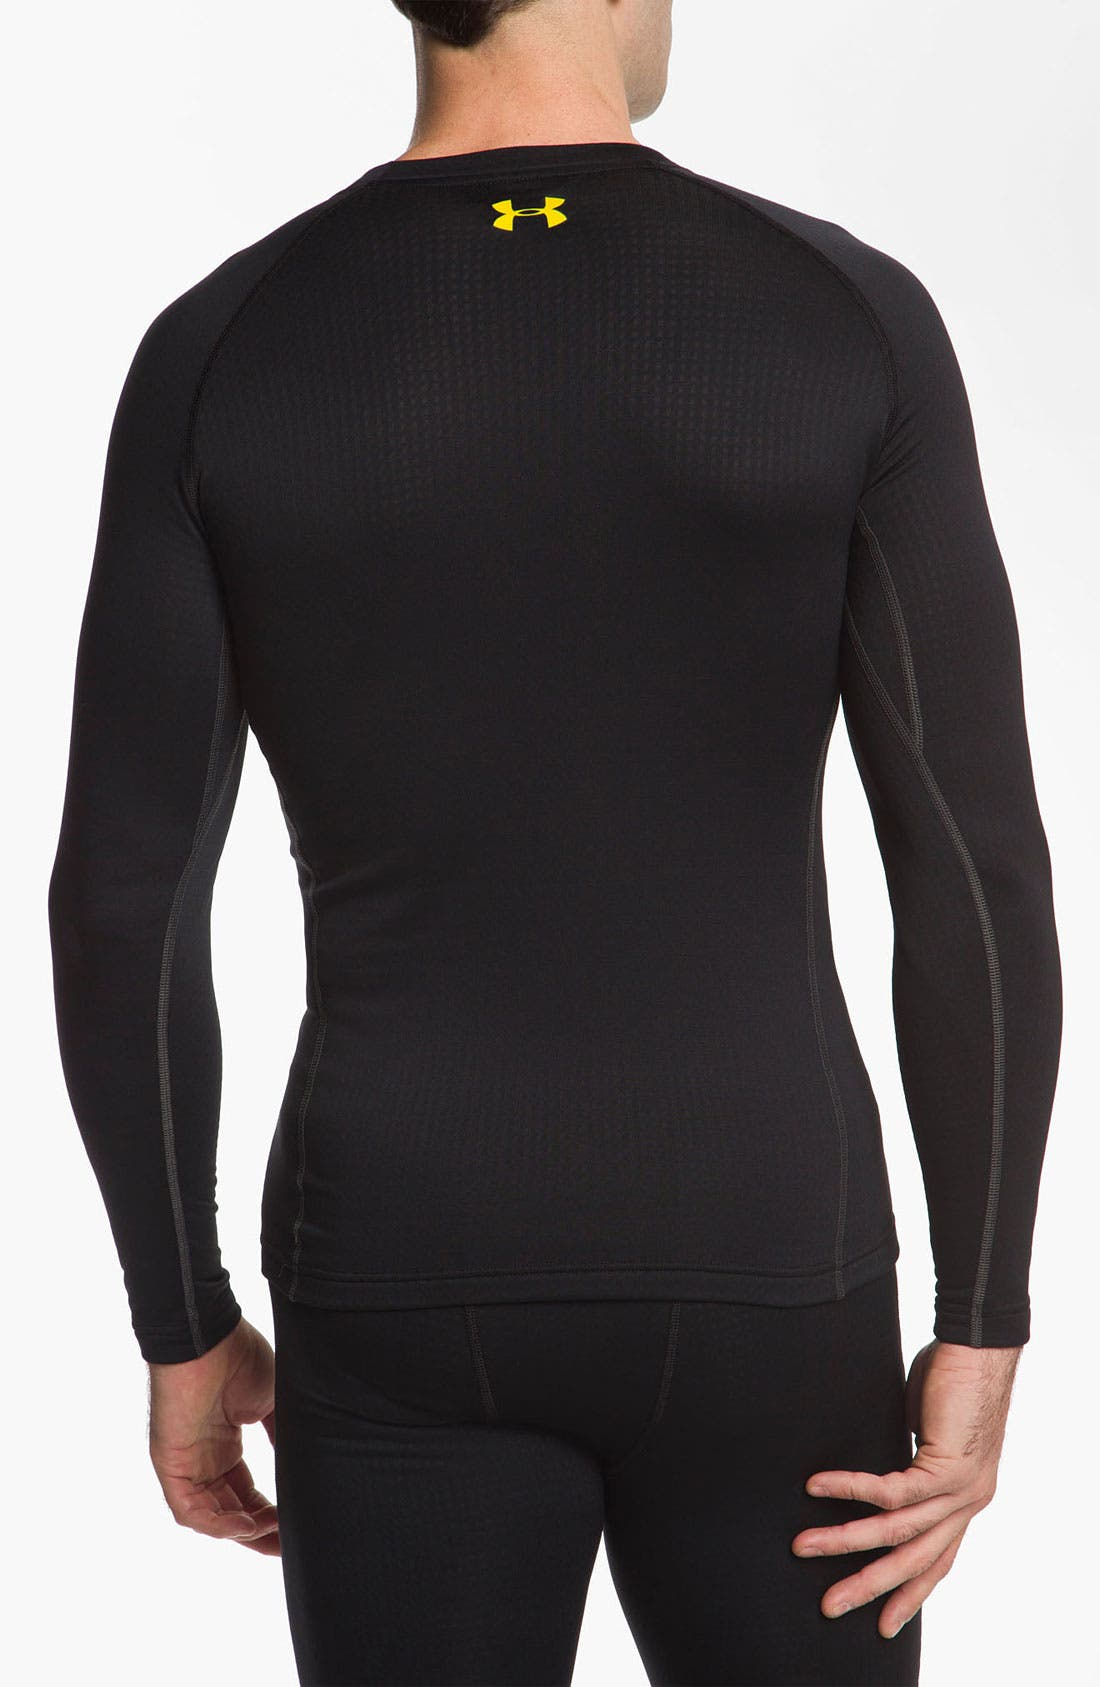 Alternate Image 2  - Under Armour 'Base 2.0' Fitted Crewneck Top (Online Only)